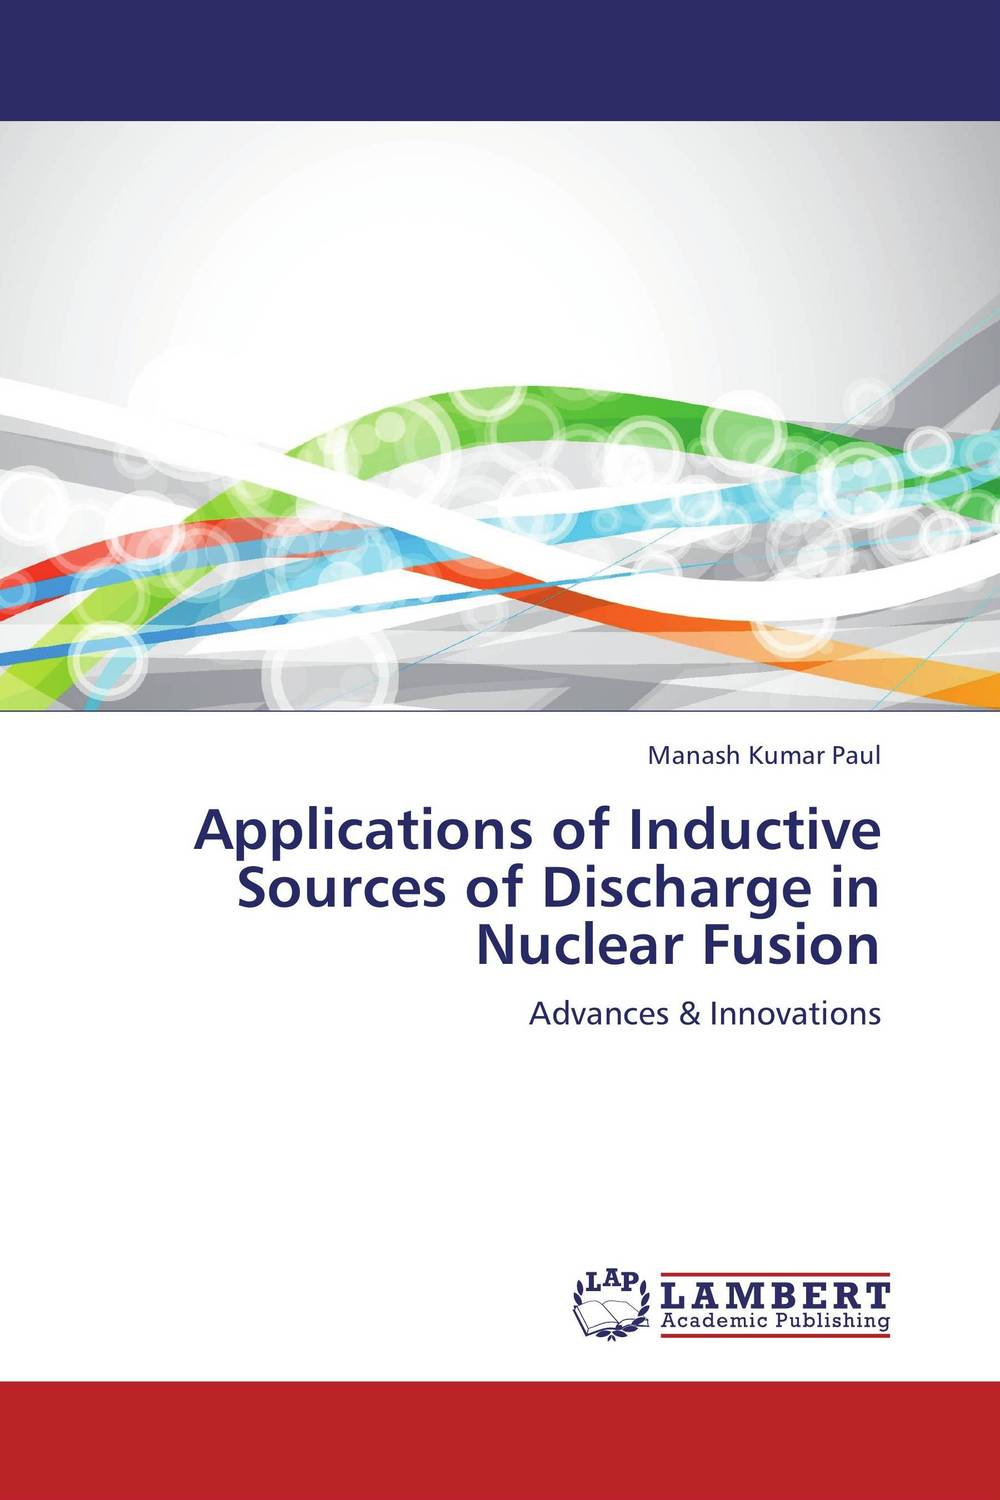 Applications of Inductive Sources of Discharge in Nuclear Fusion fusion and revision of uncertain information from multiple sources